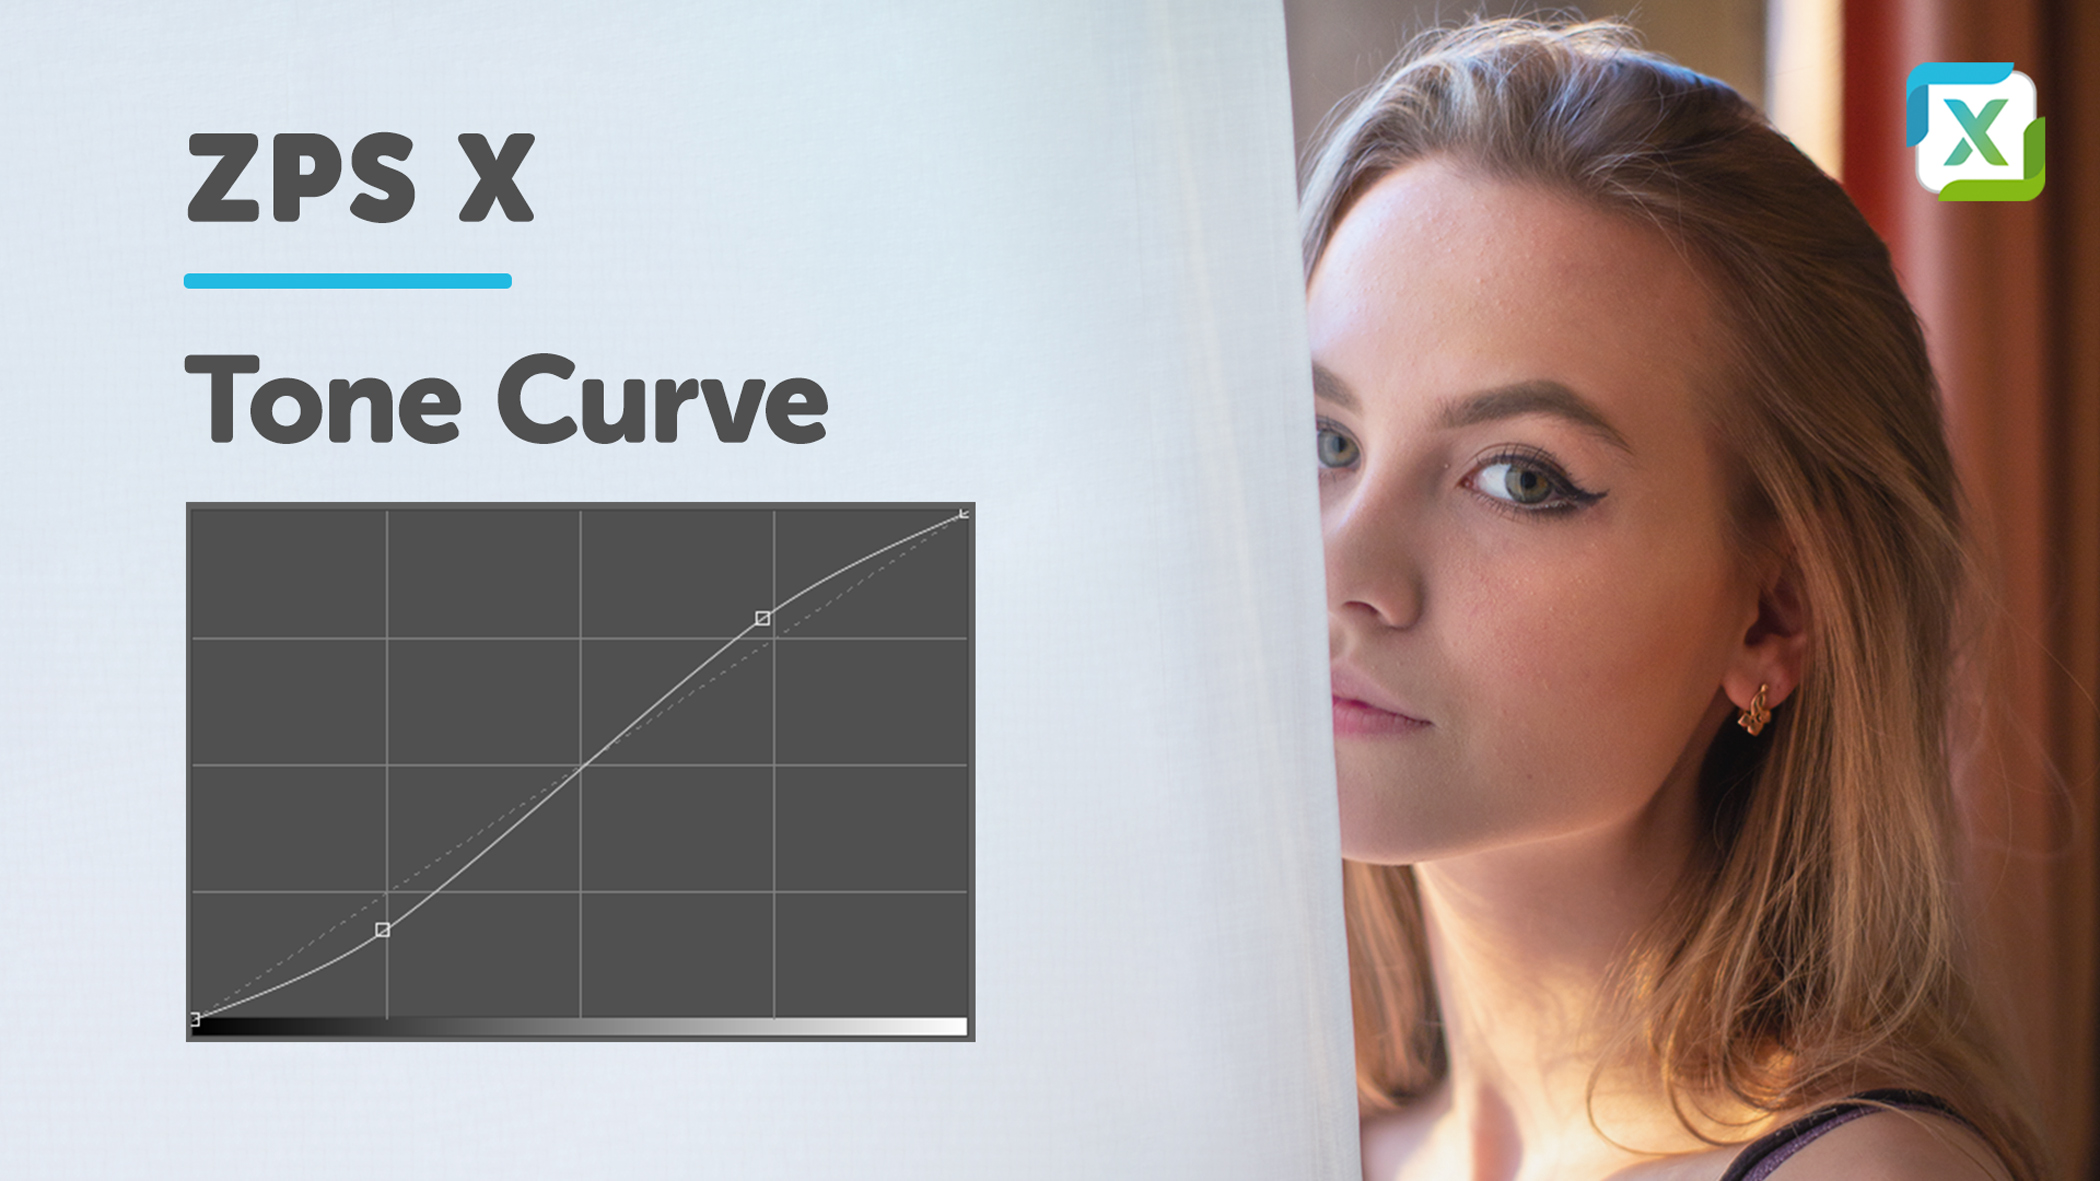 VIDEO: Tone Curve—3 Practical Tips